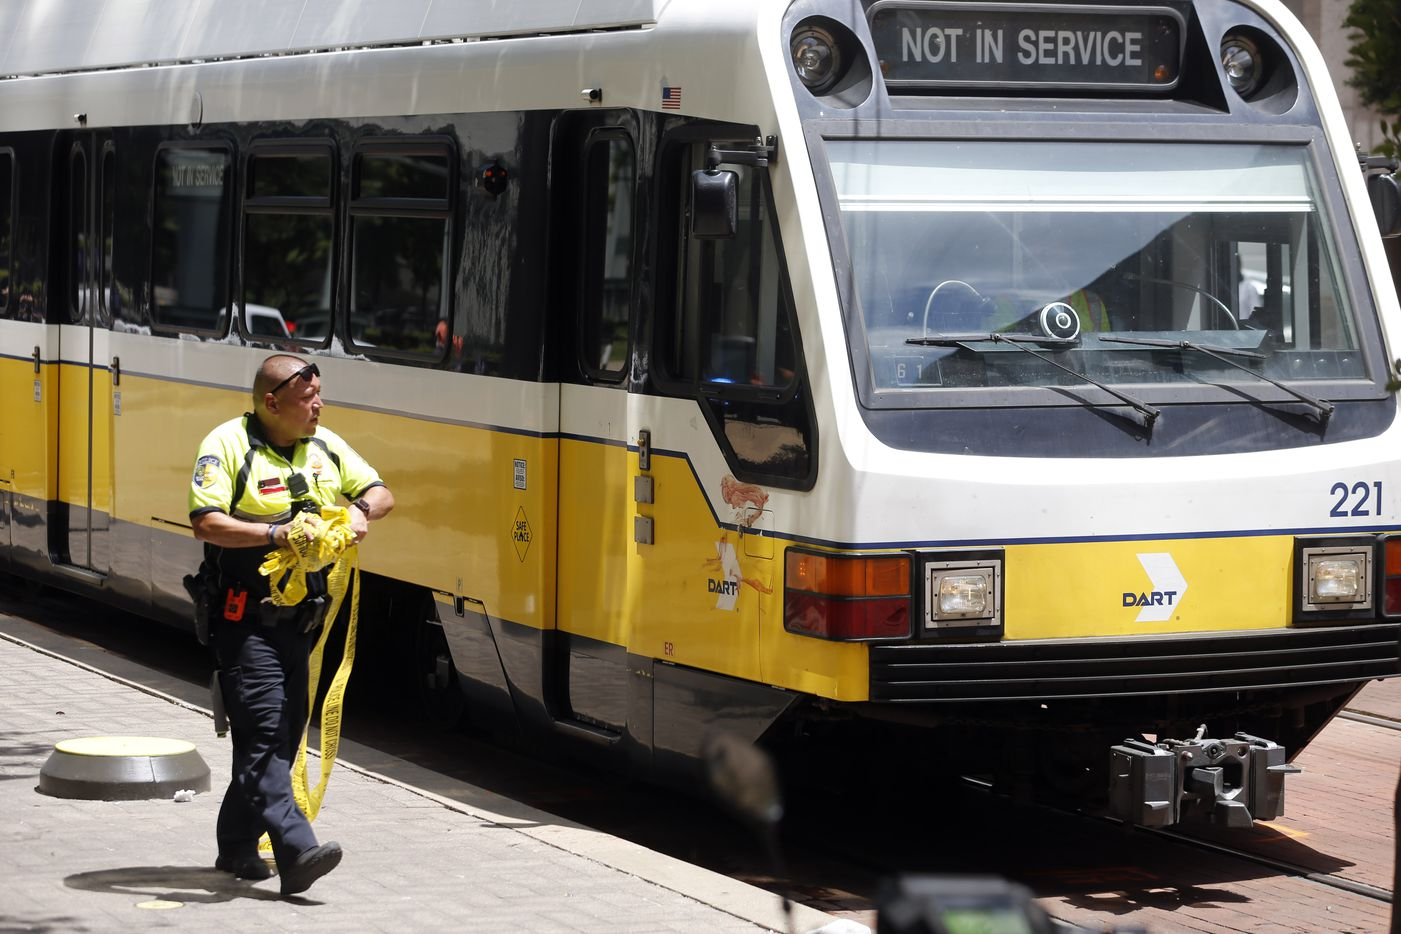 DART police remove caution tape as a train prepares to move forward after a Dallas police officer was hit by a DART train near the intersection of Bryan St. and Olive St. in downtown Dallas on Tuesday, August 13, 2019.